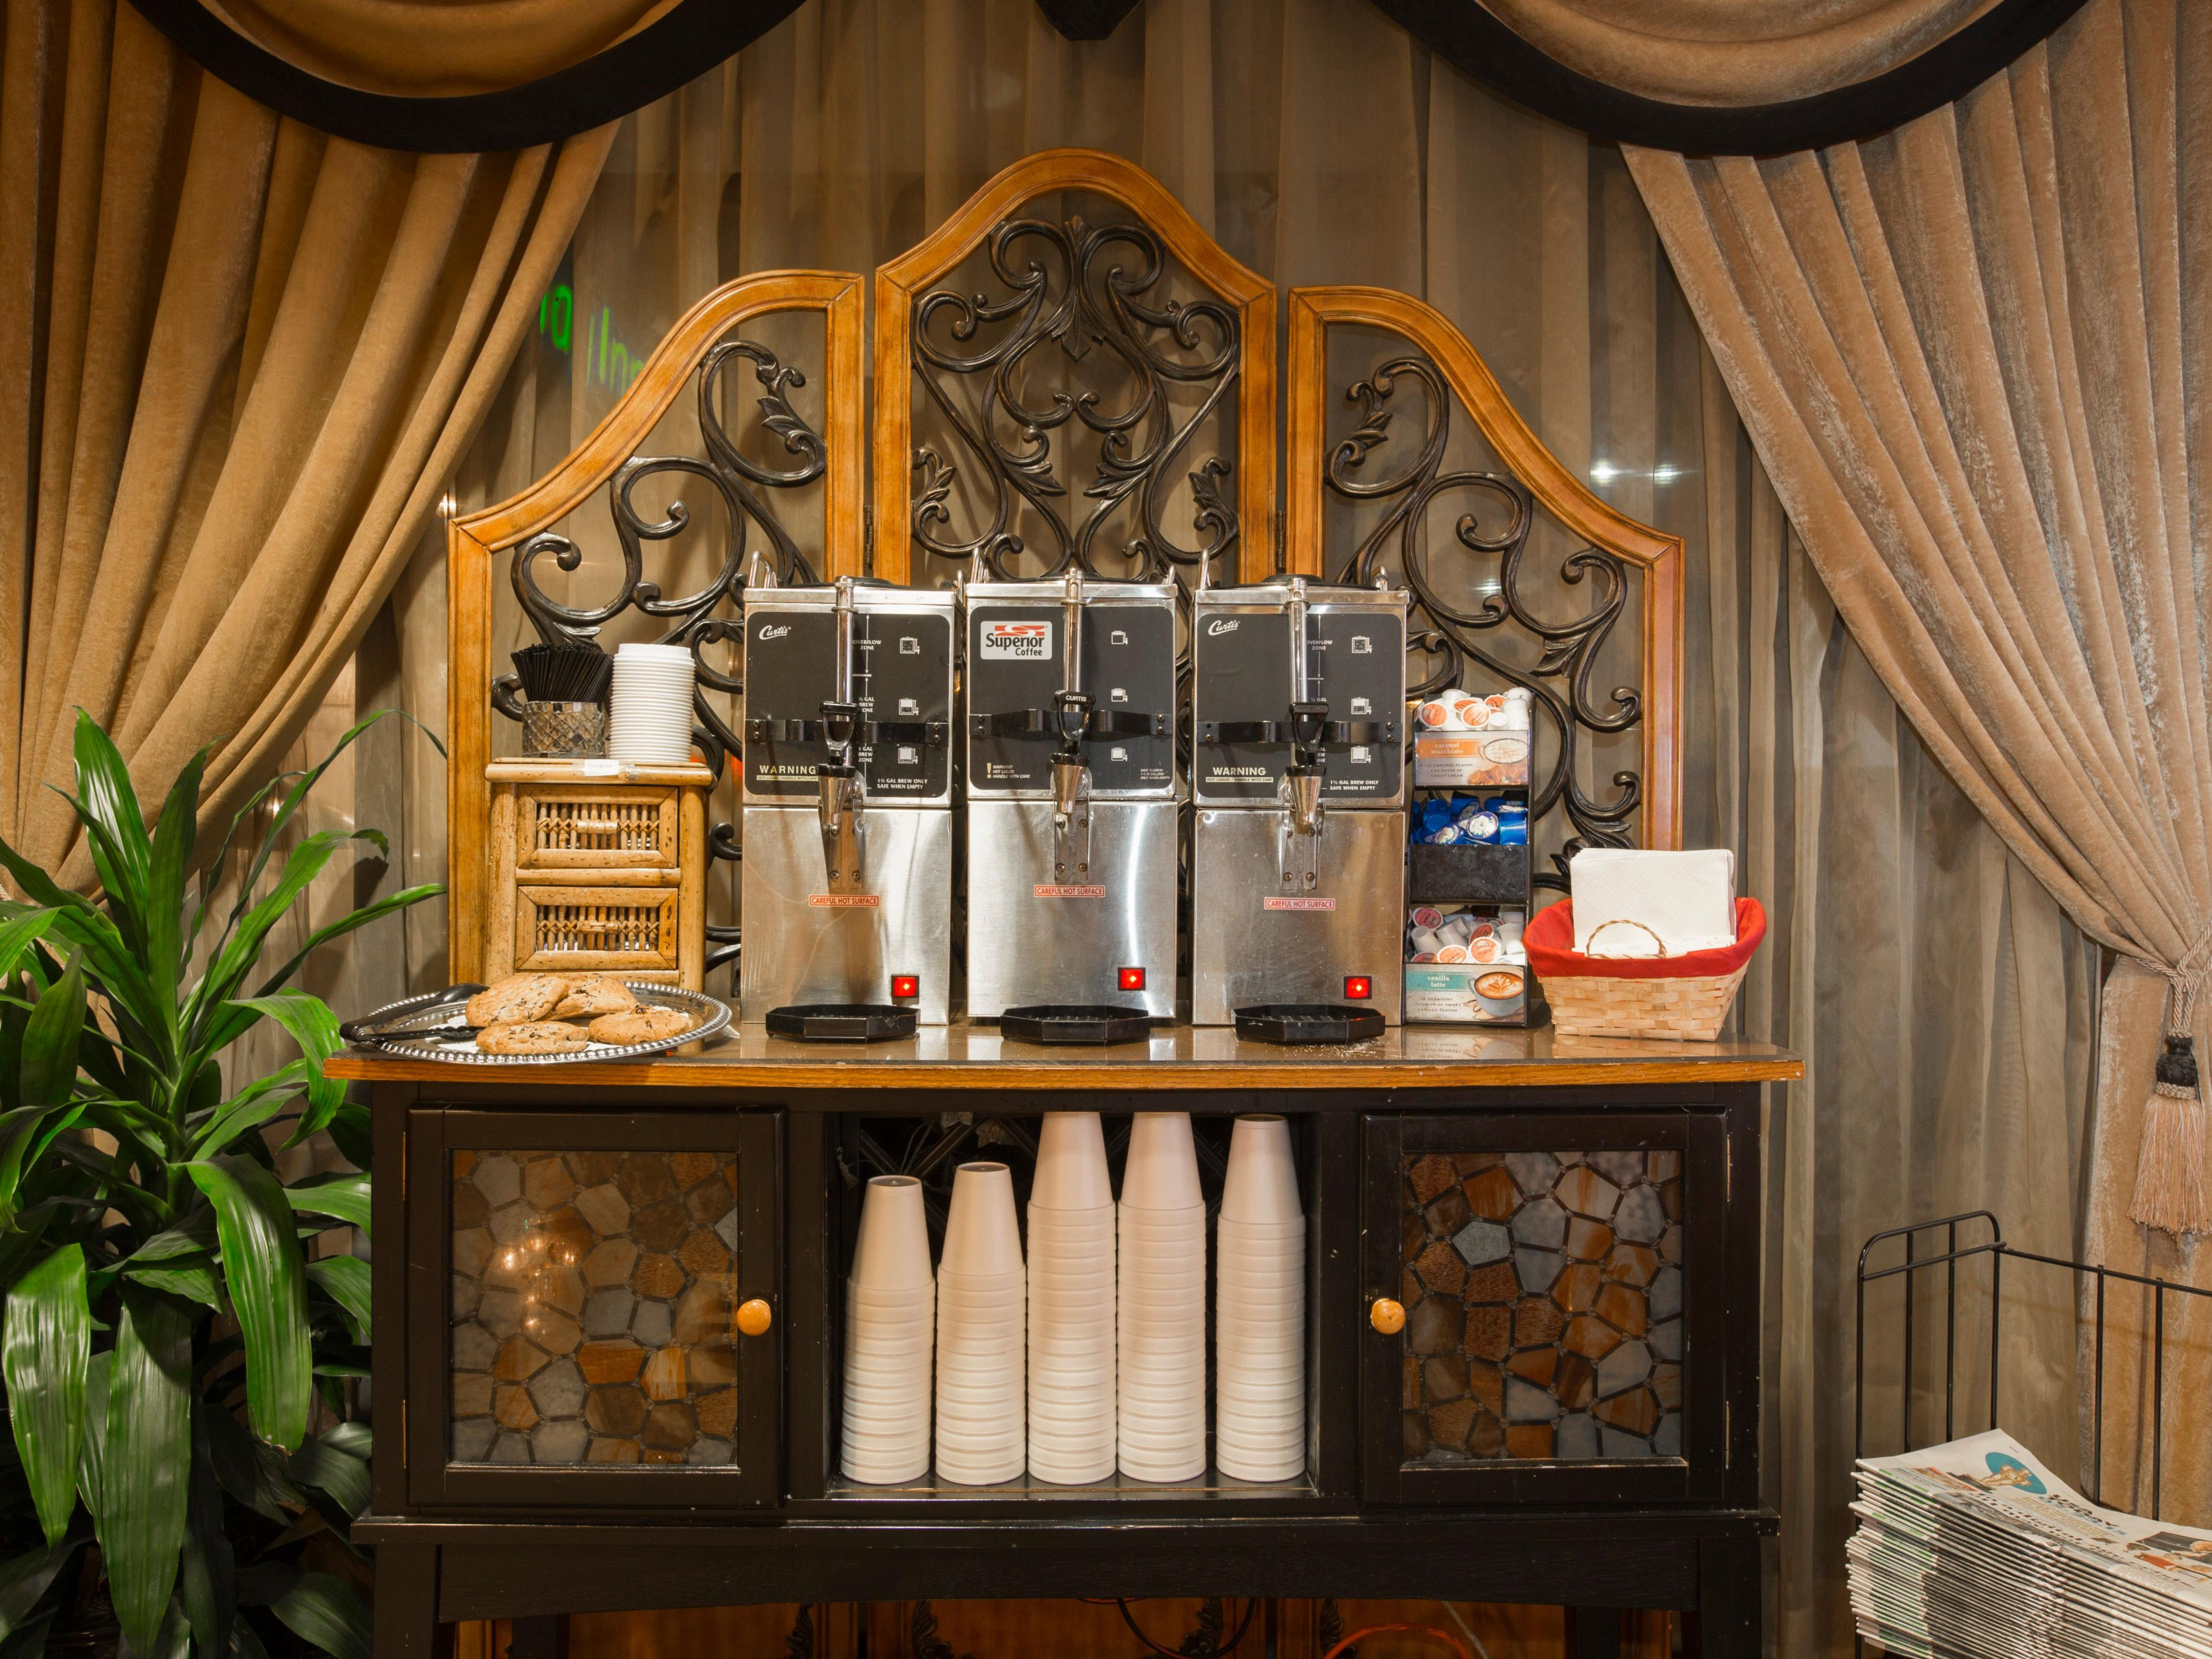 Free regular coffee and hot tea in the Lobby 24 hours.